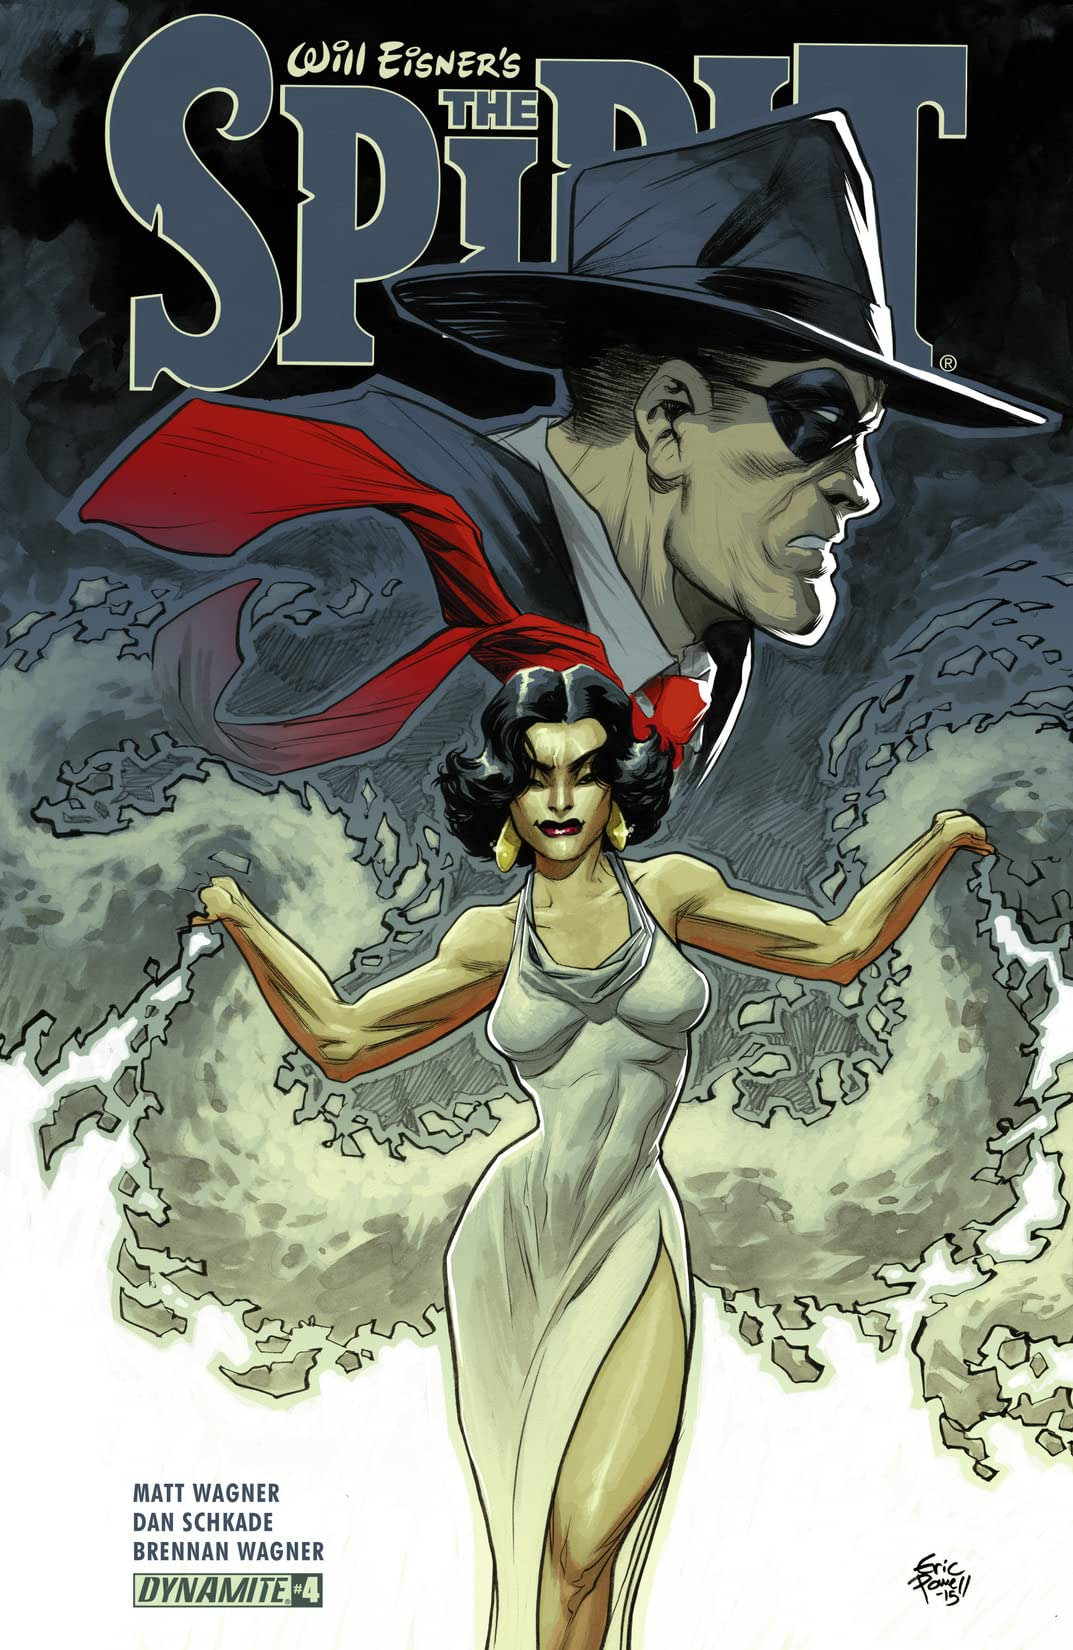 Will Eisner's The Spirit #4: Digital Exclusive Edition